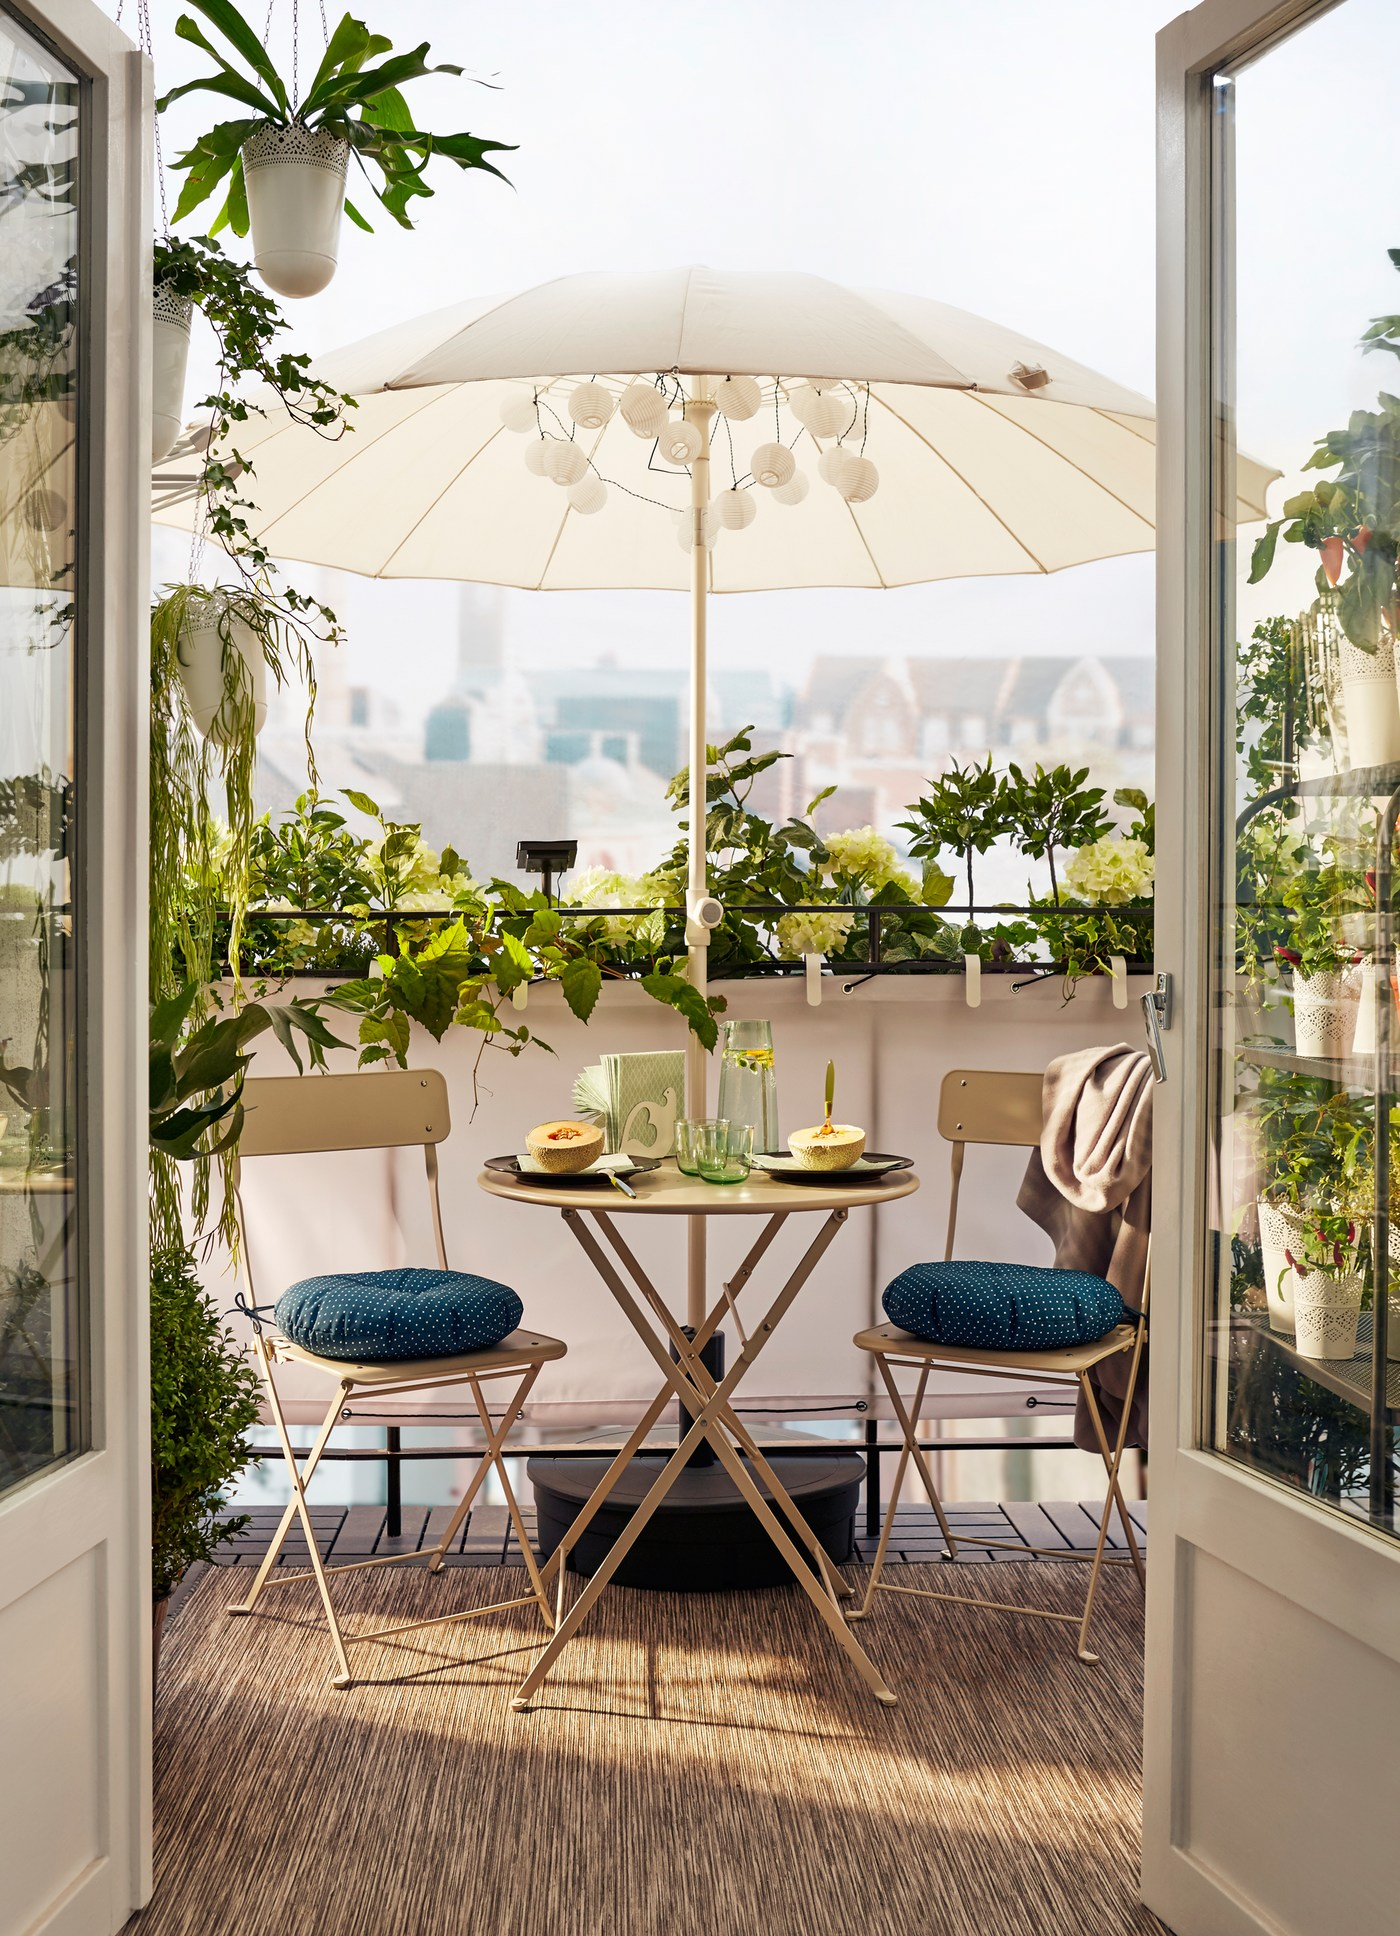 Double glass doors open onto a private balcony edged with plants and boasting a table for two under a beige parasol.